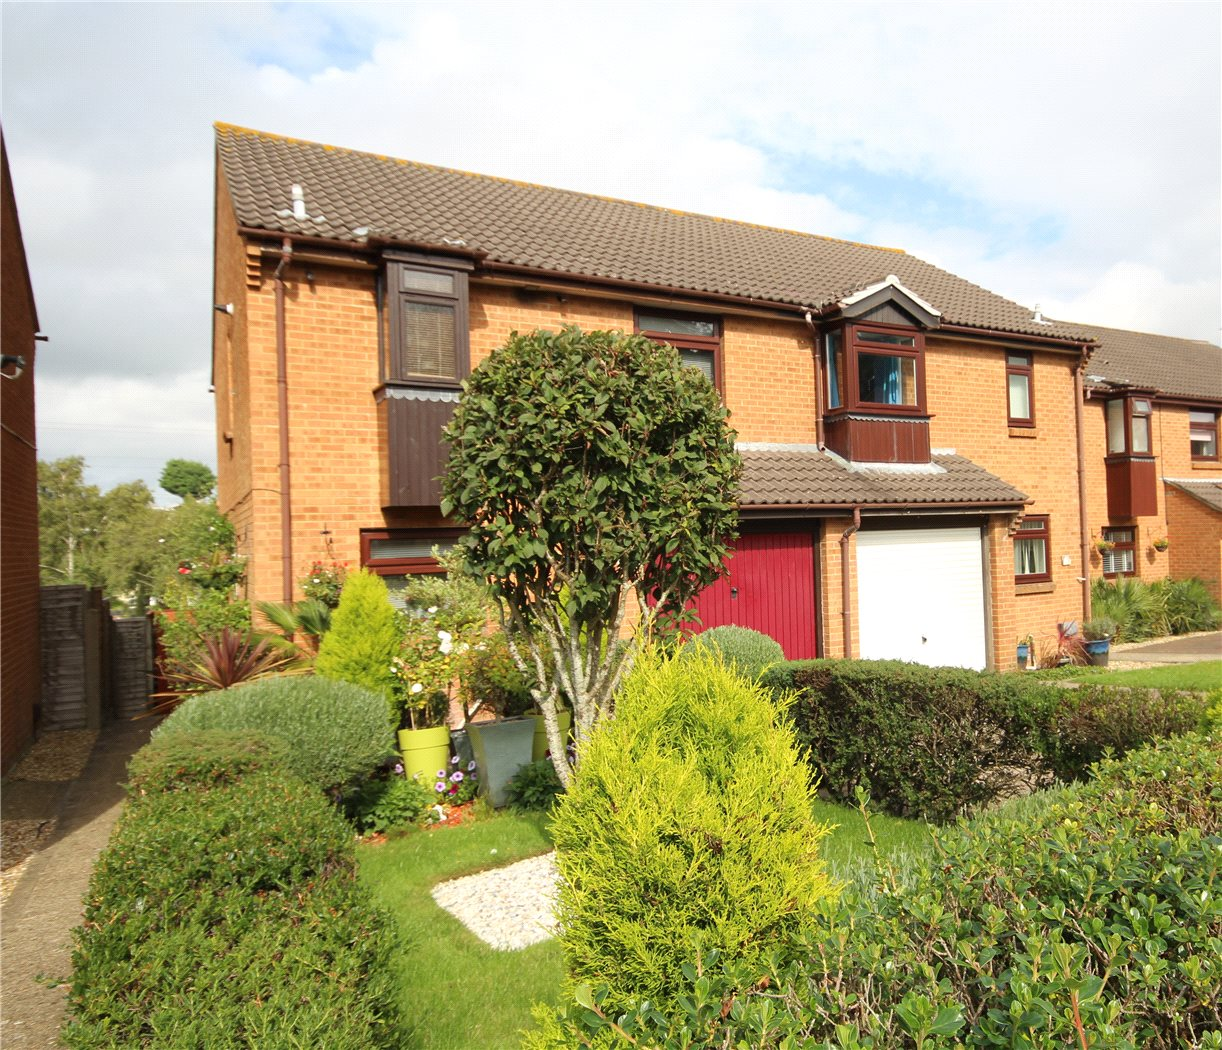 3 Bedrooms Semi Detached House for sale in Tollard Close, Parkstone, Poole, Dorset, BH12